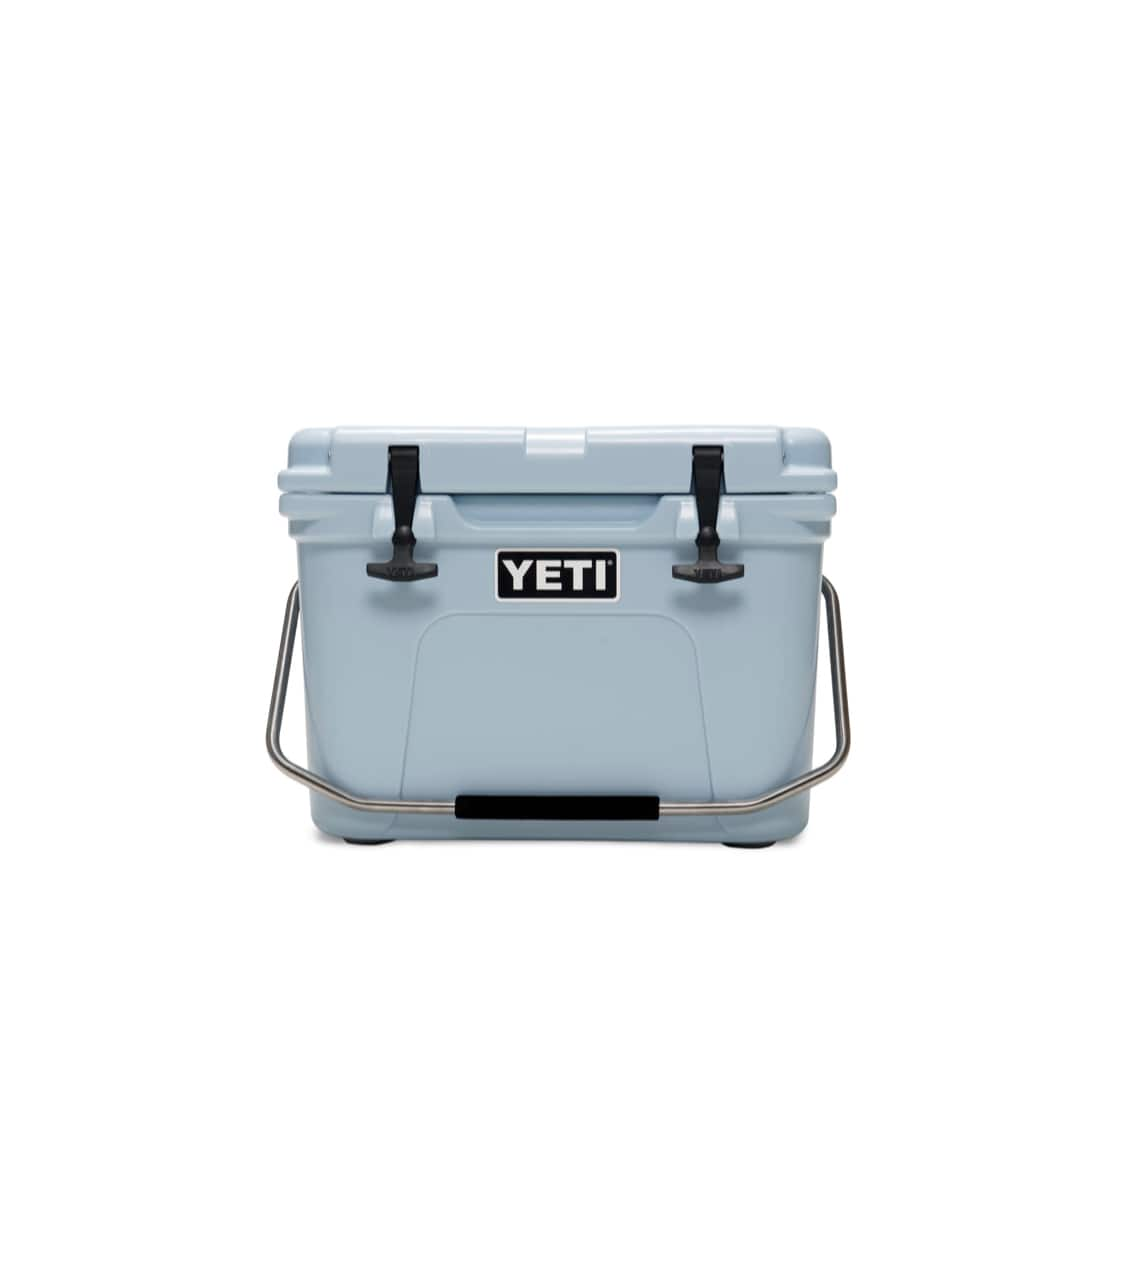 Yeti Roadie 20 Cooler in Ice Blue for $139.99 plus $5 for shipping at Woot.com $145